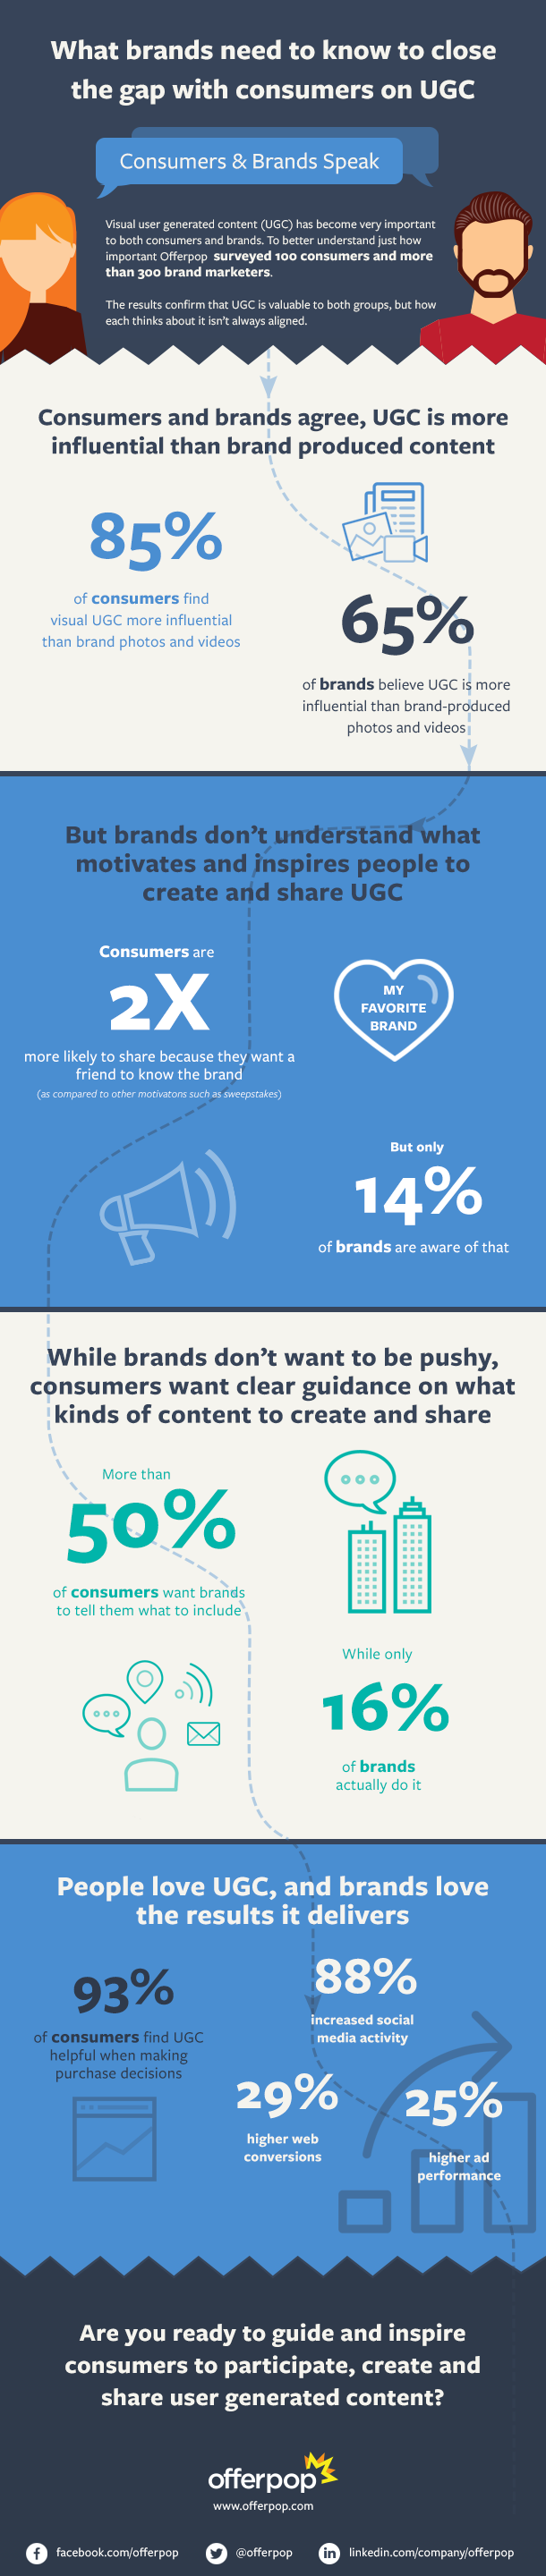 What Brands Need To Know To Close The Gap With Consumers On UGC #infographic